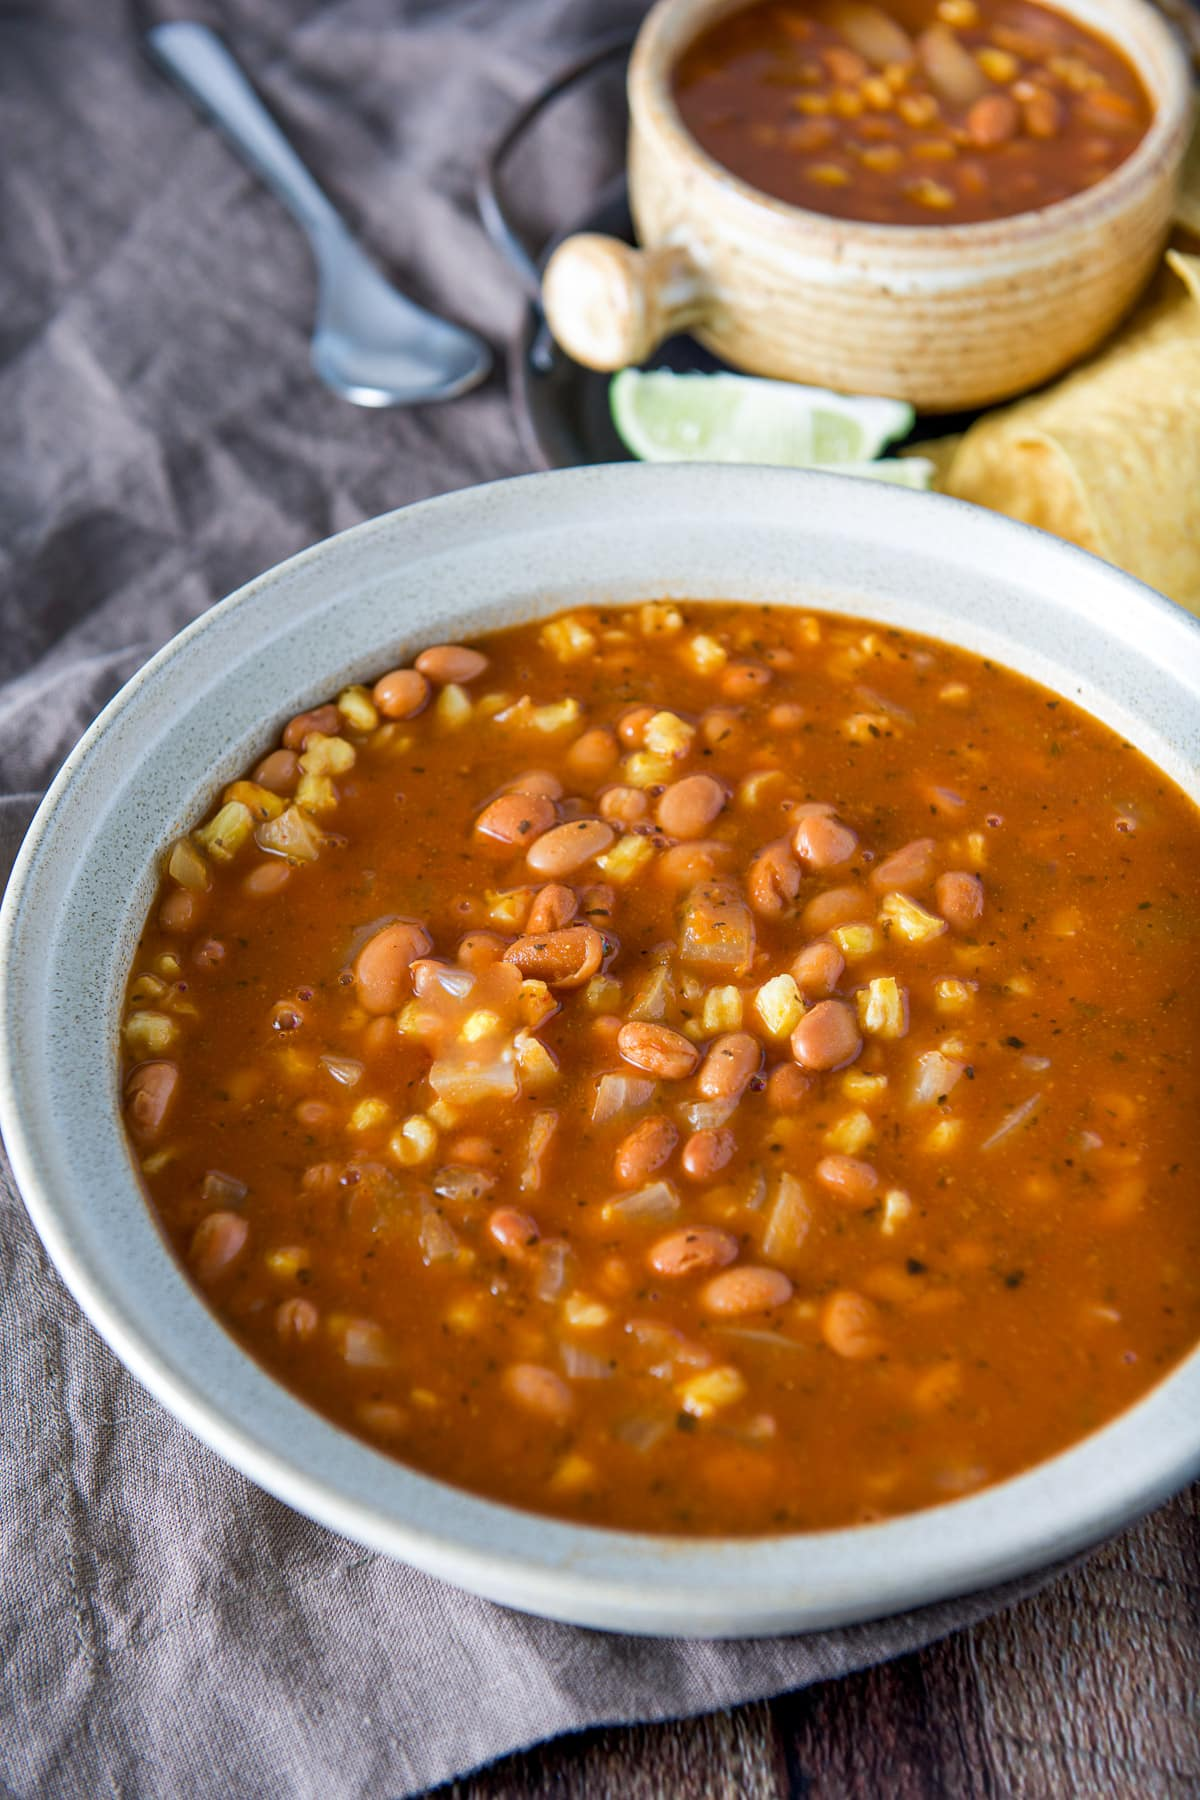 A big bowl with the posole soup in it, with a crock full of the soup in the back